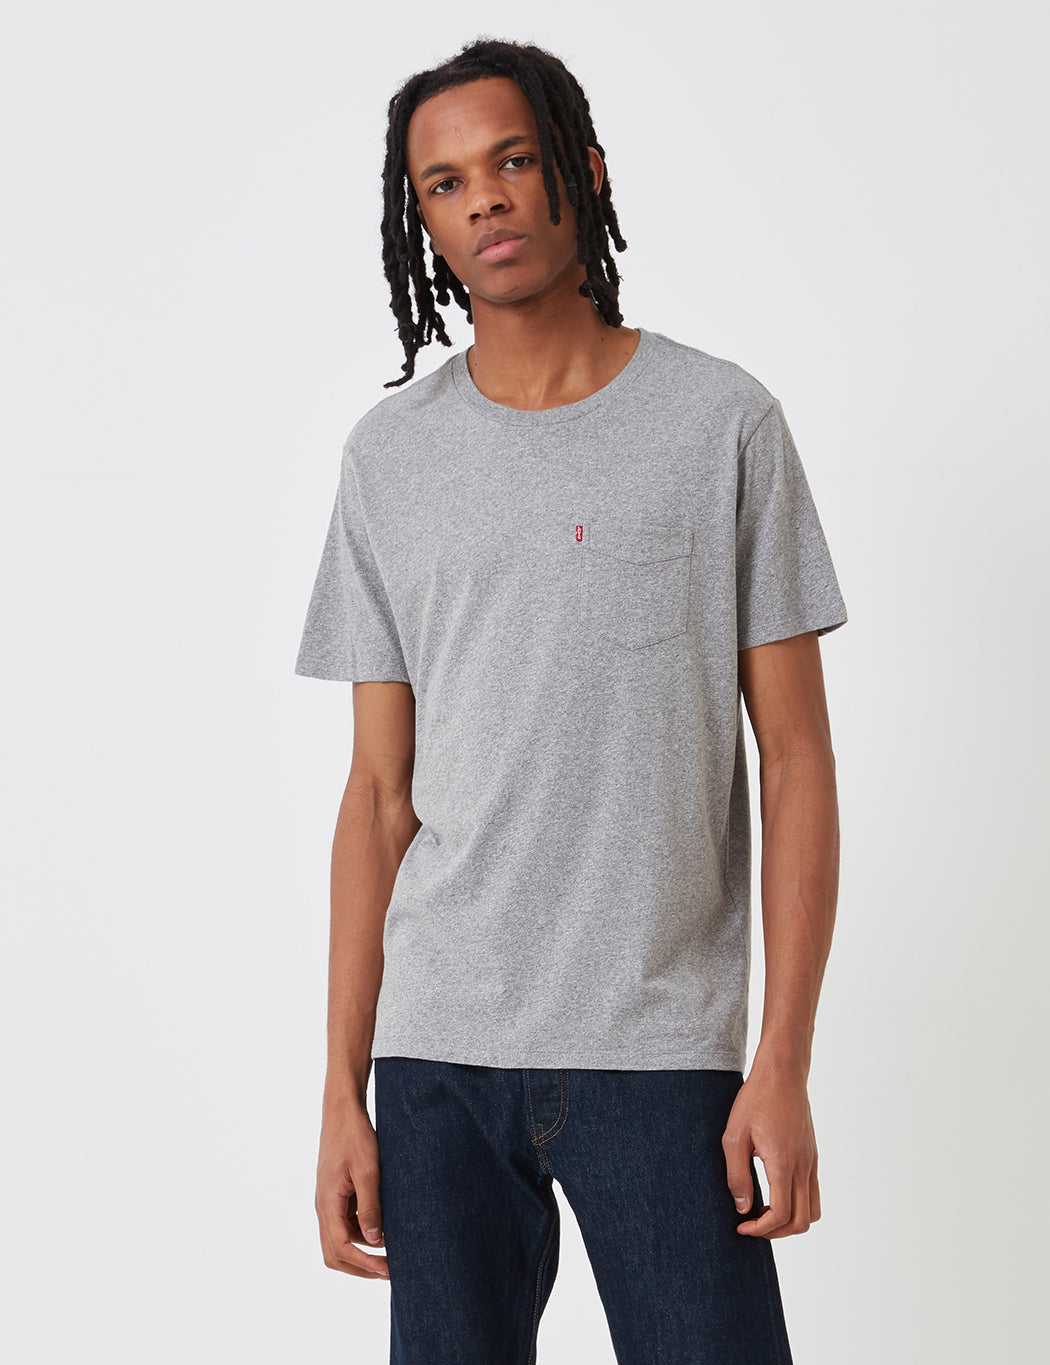 Levis Sunset Pocket T-Shirt - Medium Grey Heather